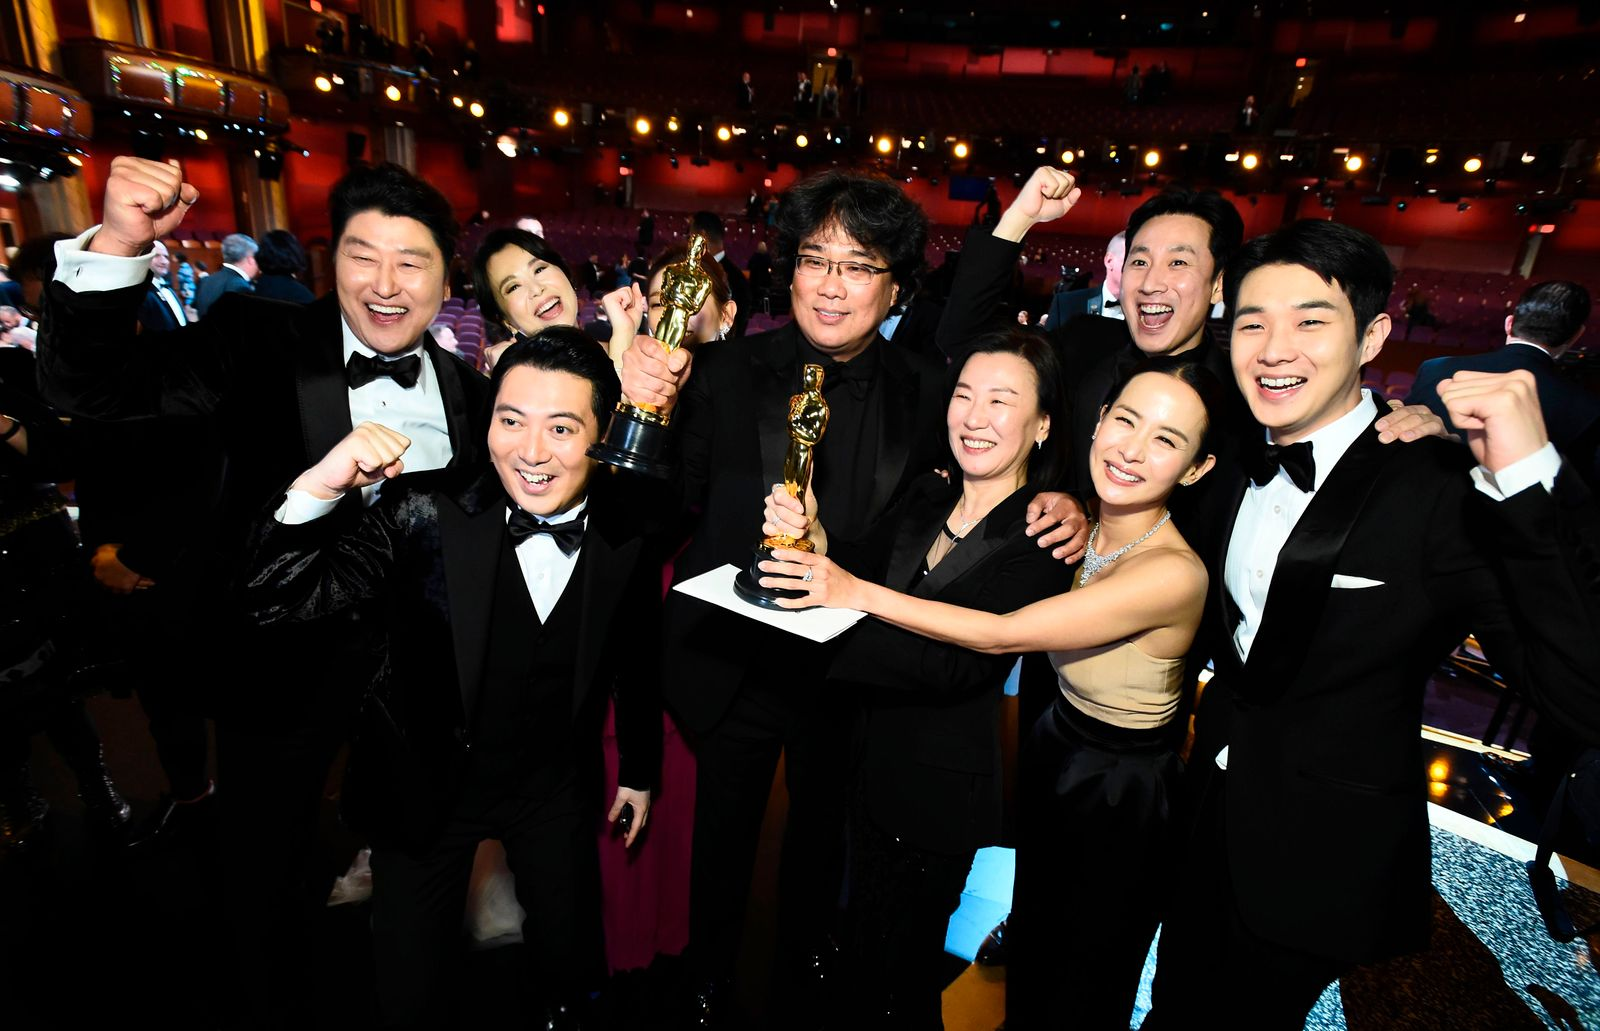 Oscars night, the biggest event in the movie industry's calendar